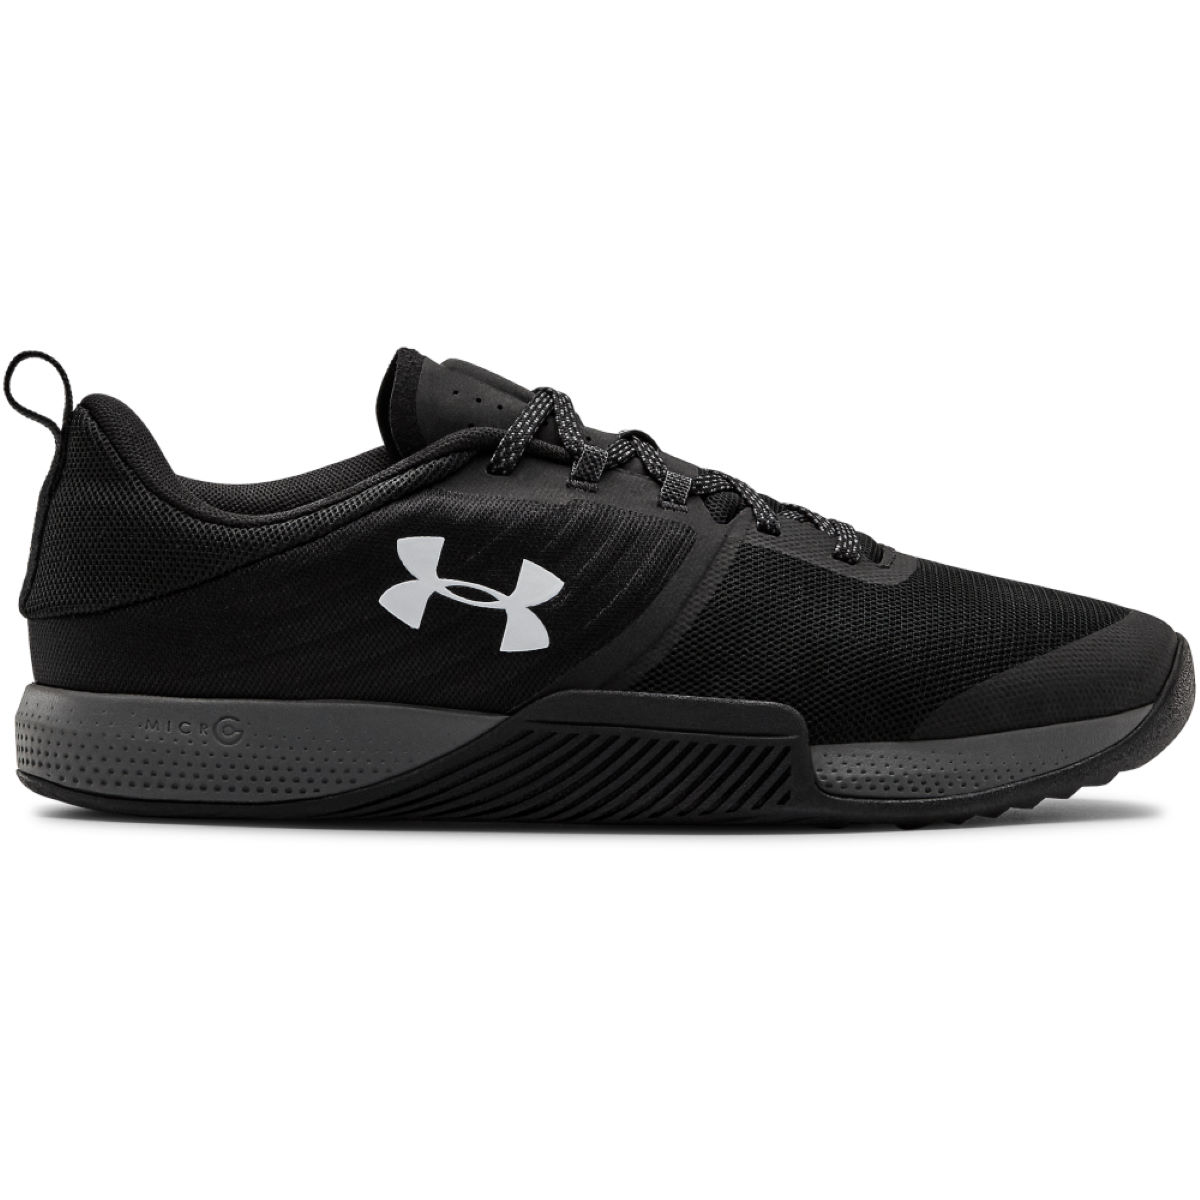 Under Armour Under Armour TriBase Thrive Gym Shoe   Fitness Shoes